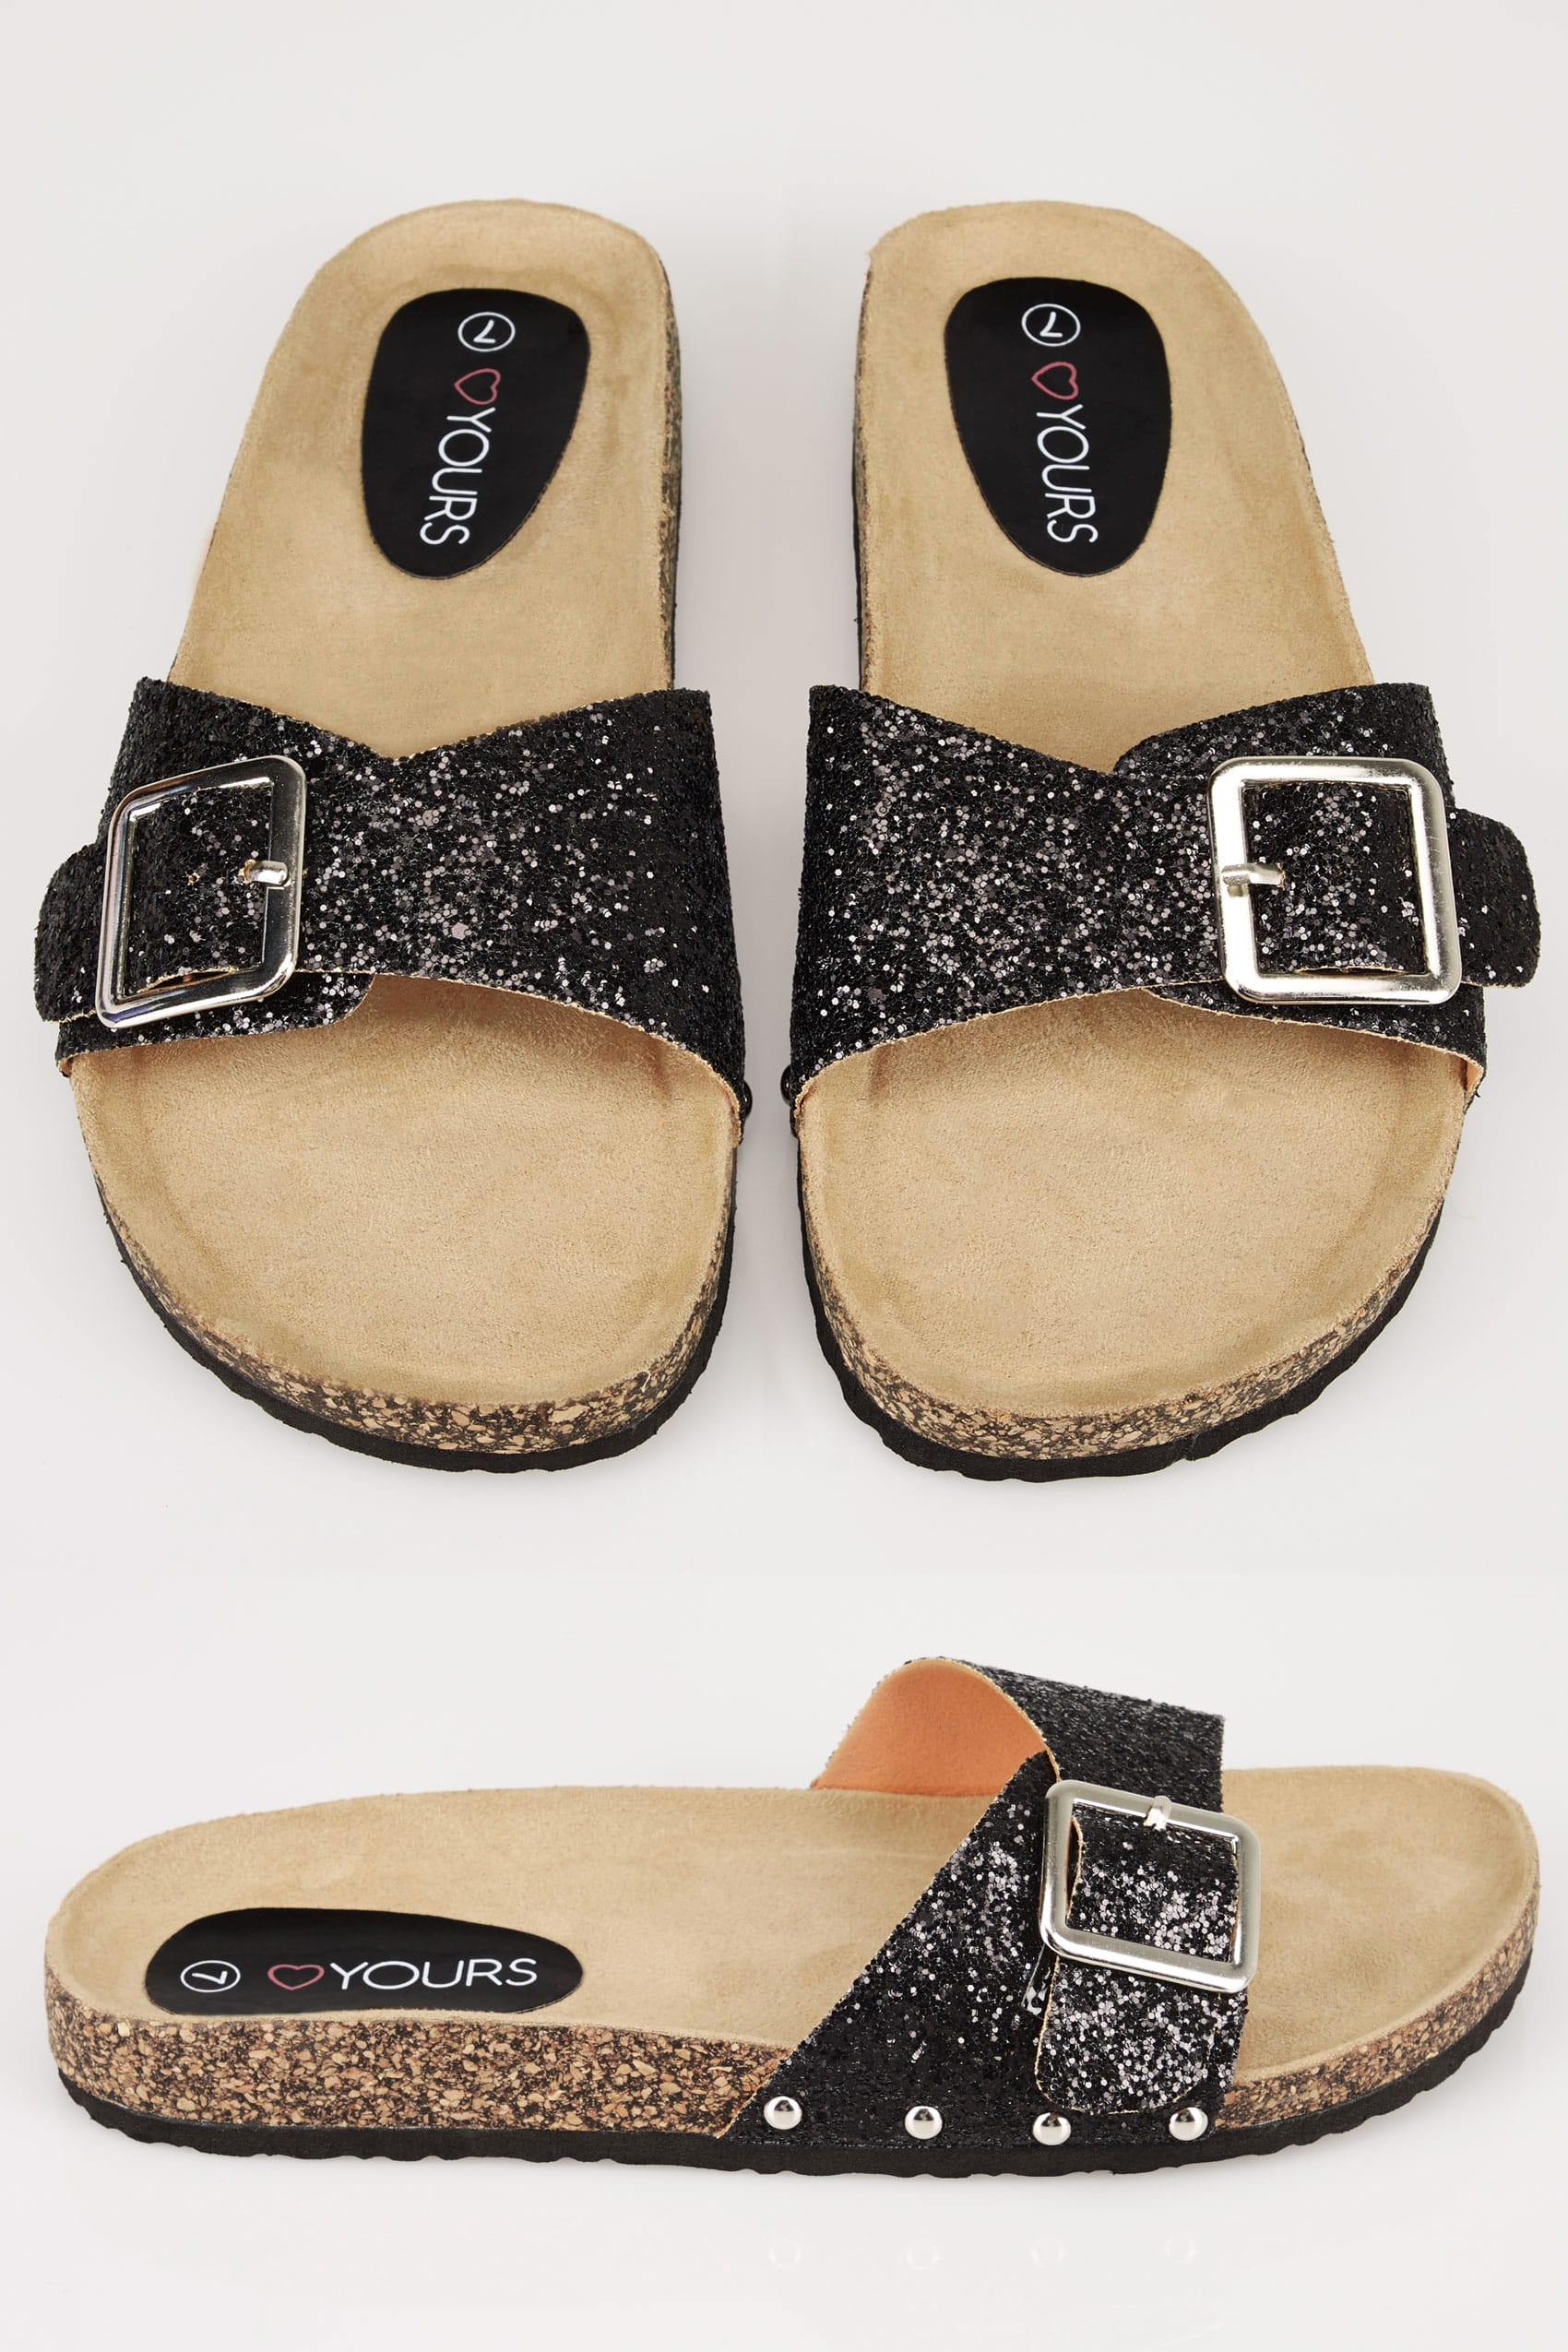 Black Glitter Cork Effect Sandals In Eee Fit-8338